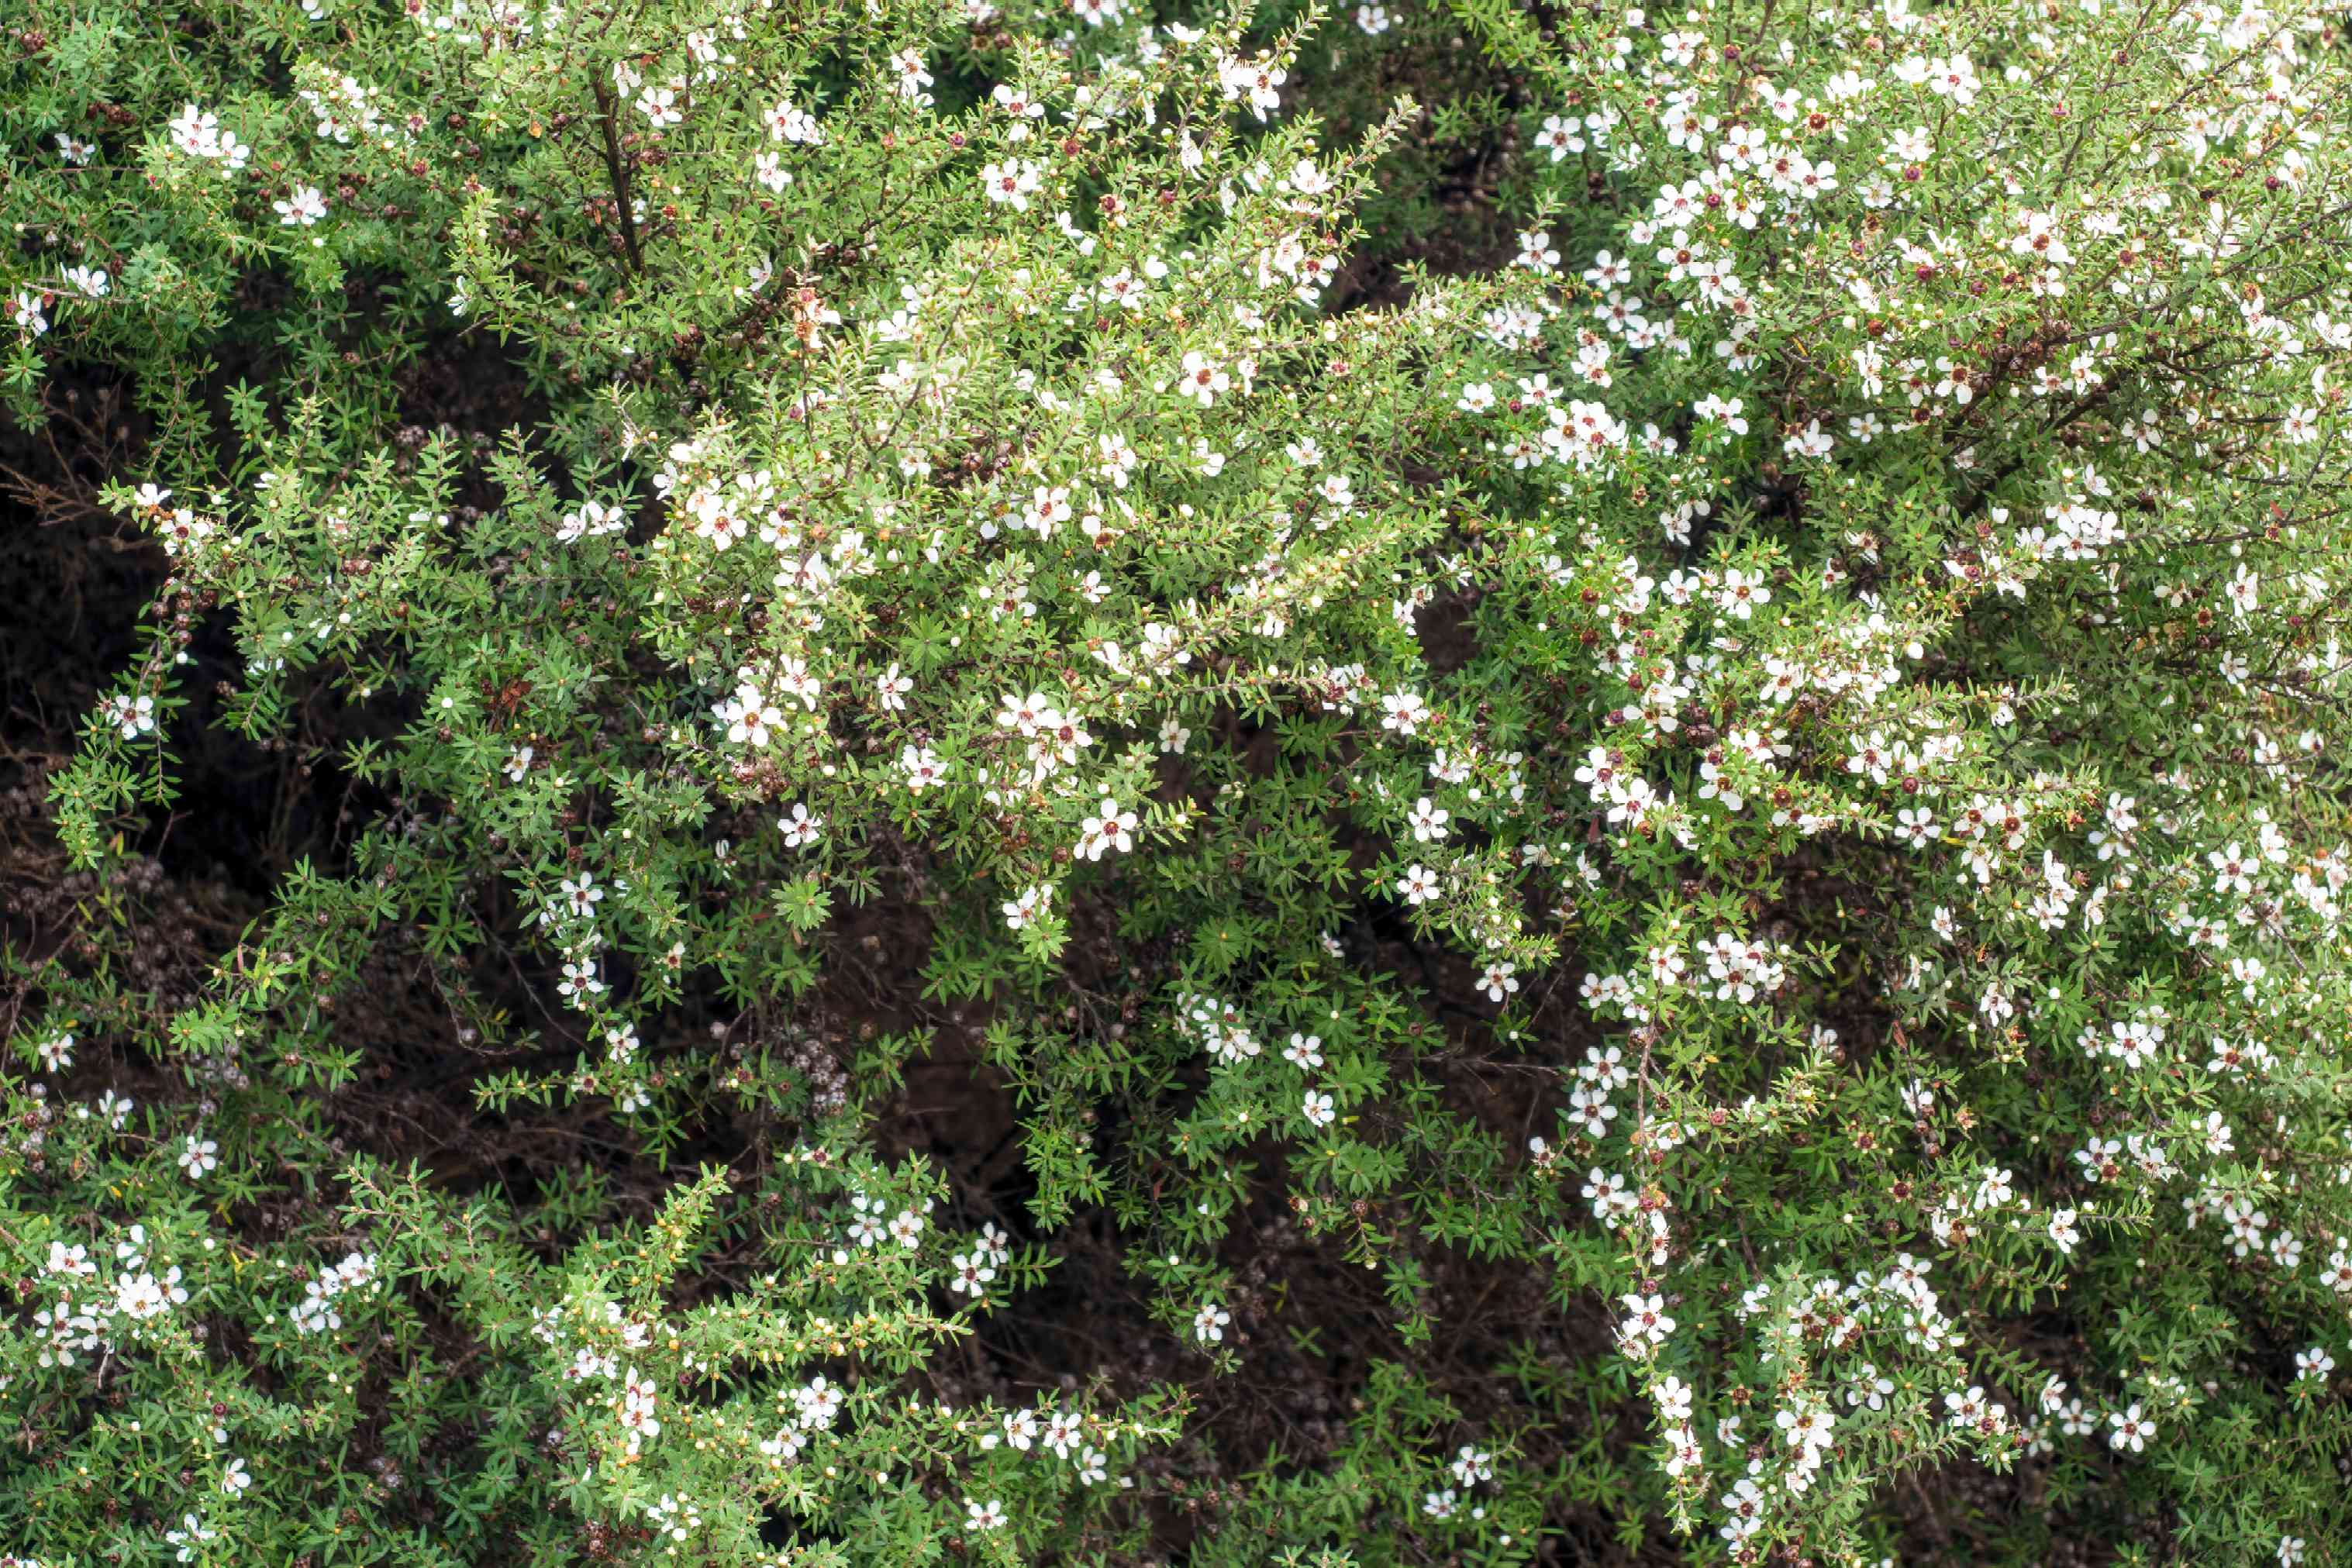 New Zealand tea tree branches with small needle-like leaves and small white blossoms